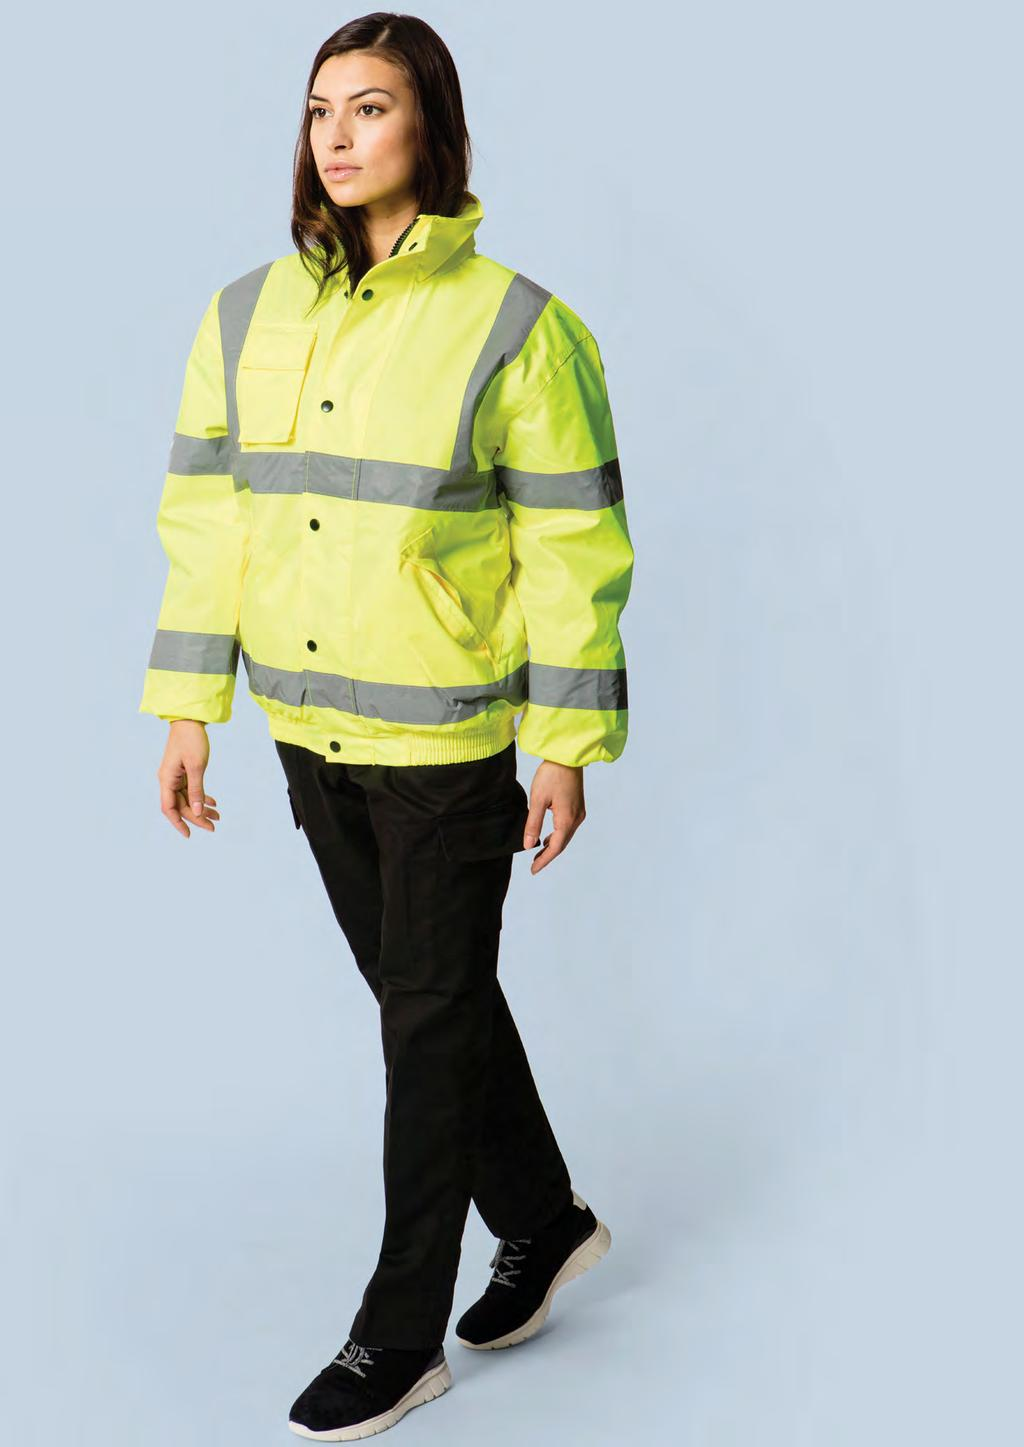 HI-VIS UC804 UNISEX HIGH VISIBILITY BOMBER JACKET 300 DENIER 40 10/1 EN ISO 20471:2013 Class 3 Approved EN 343 Class 3:1 Approved GO/RT 3279 Issue 8 (Orange Only) Conforming to 89/686/ EEC Directive